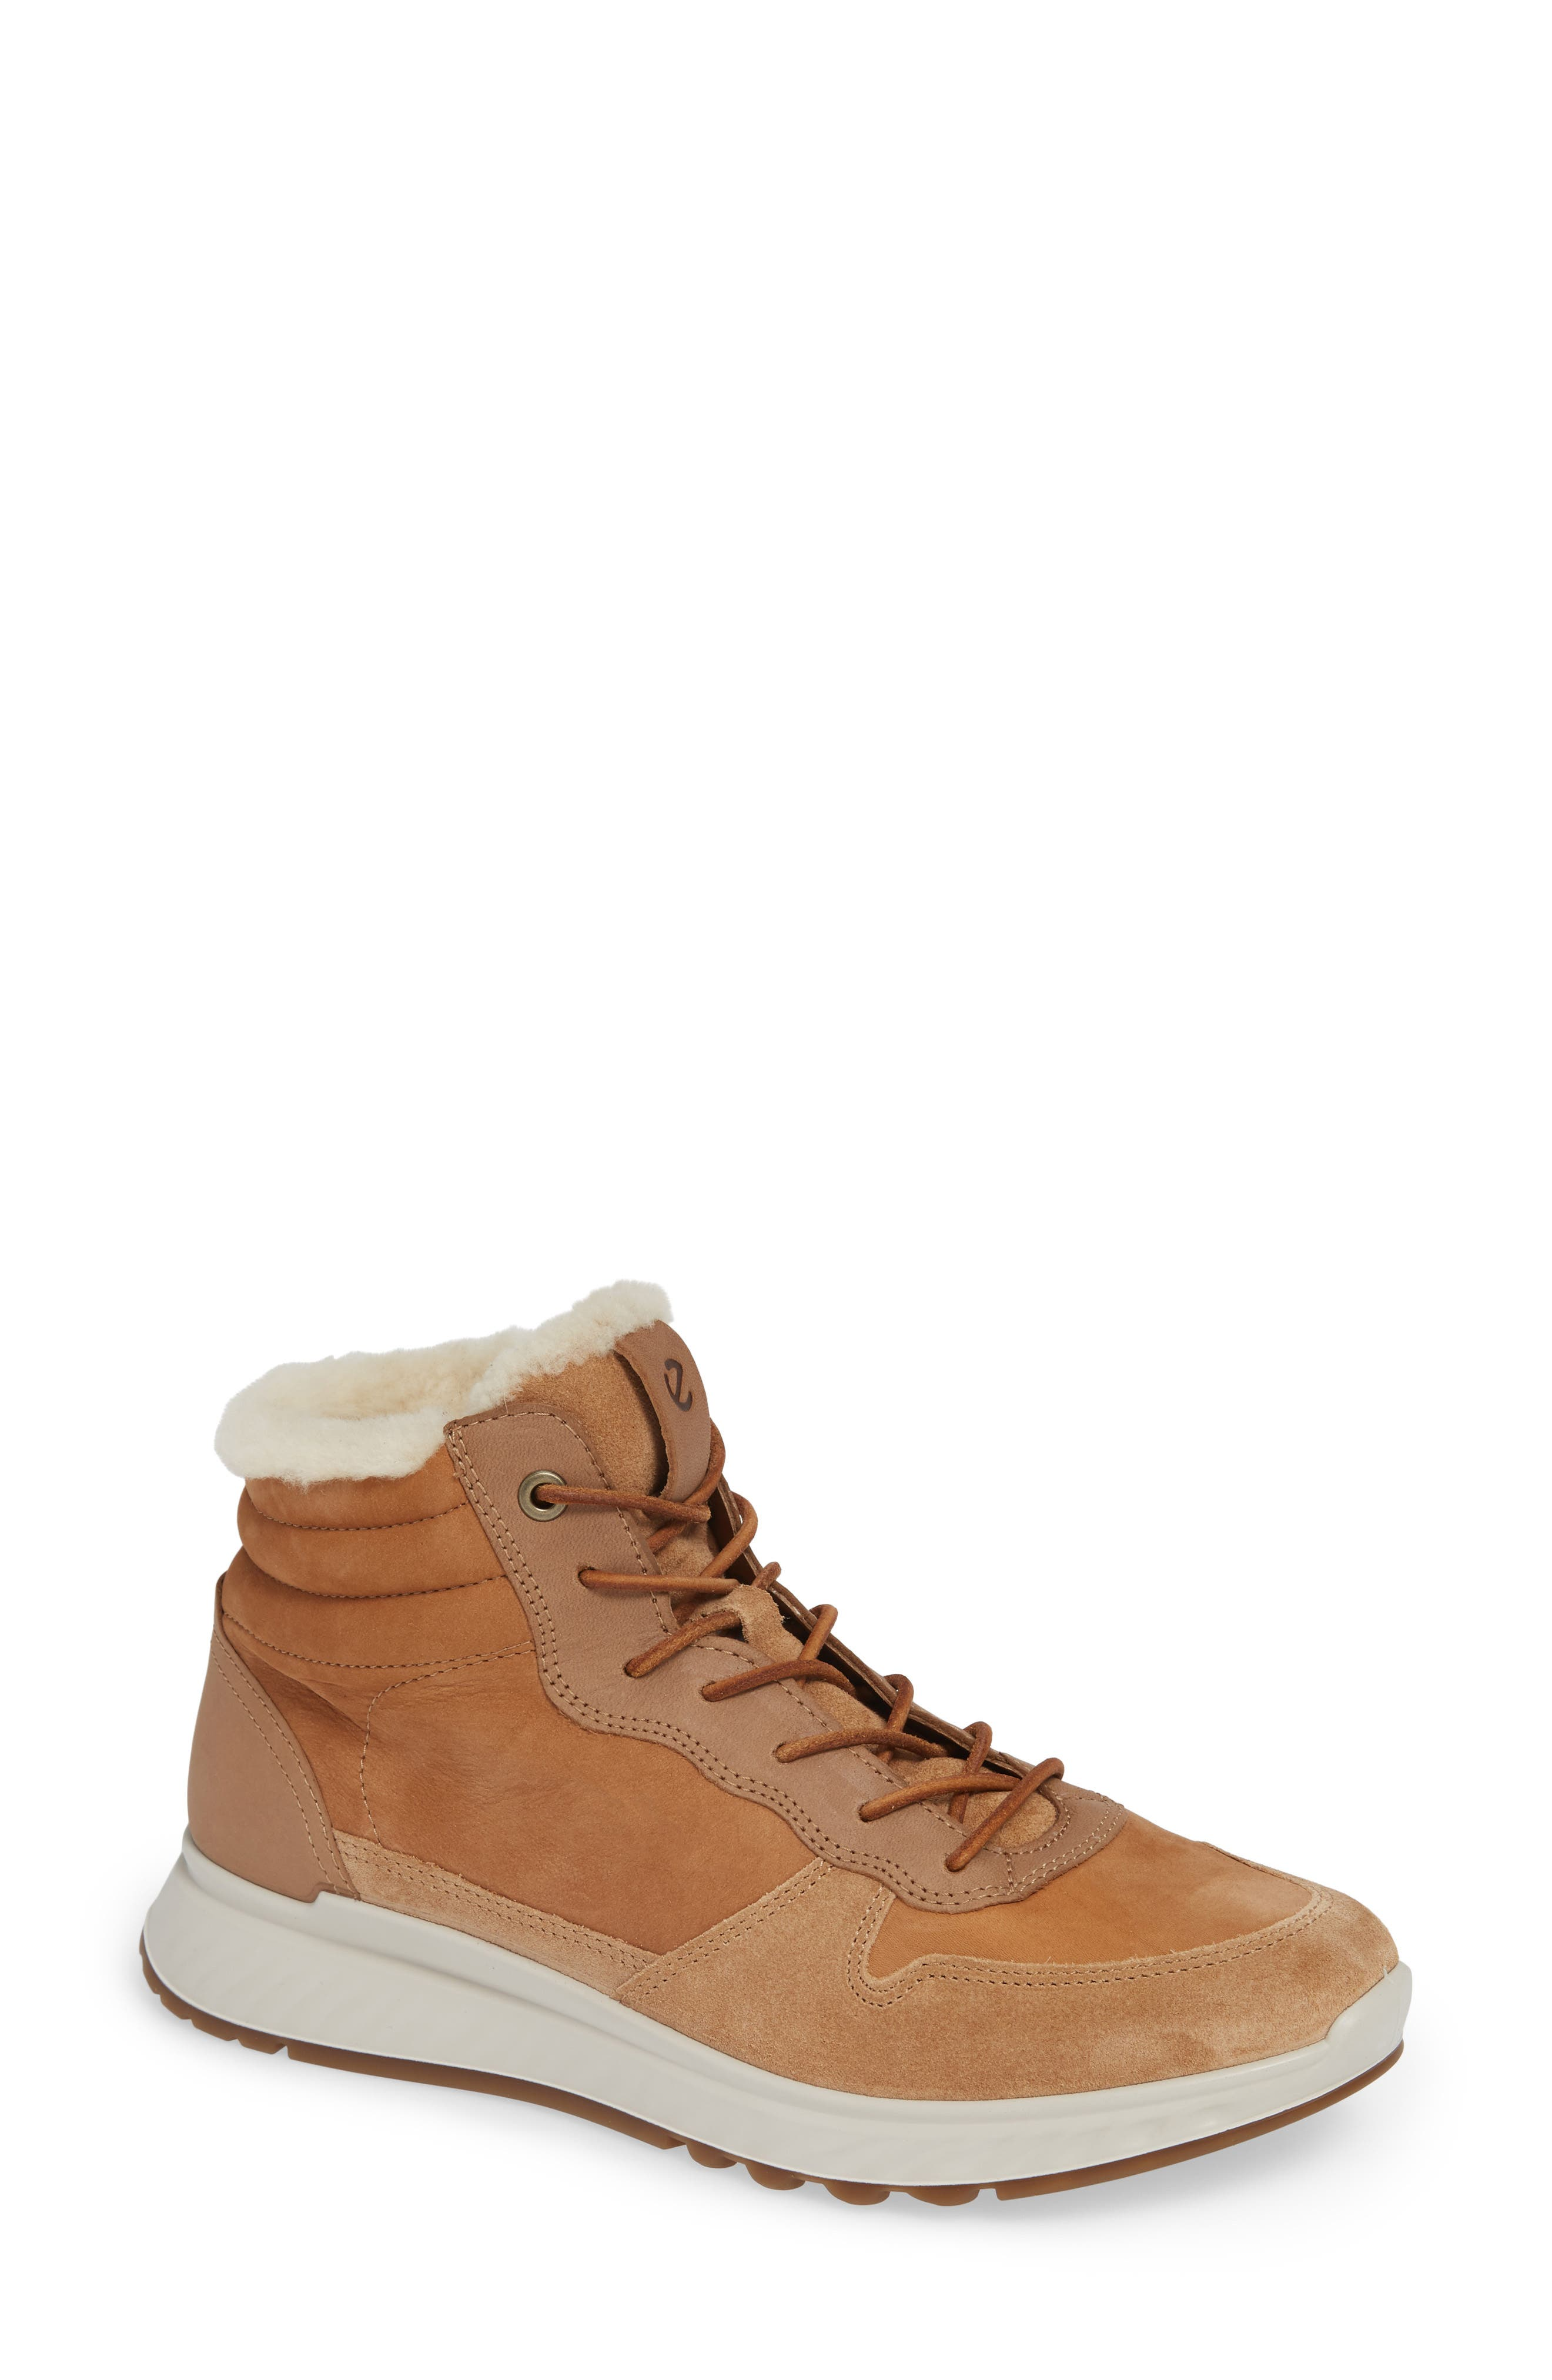 ST1 Genuine Shearling High Top Sneaker,                             Main thumbnail 1, color,                             200